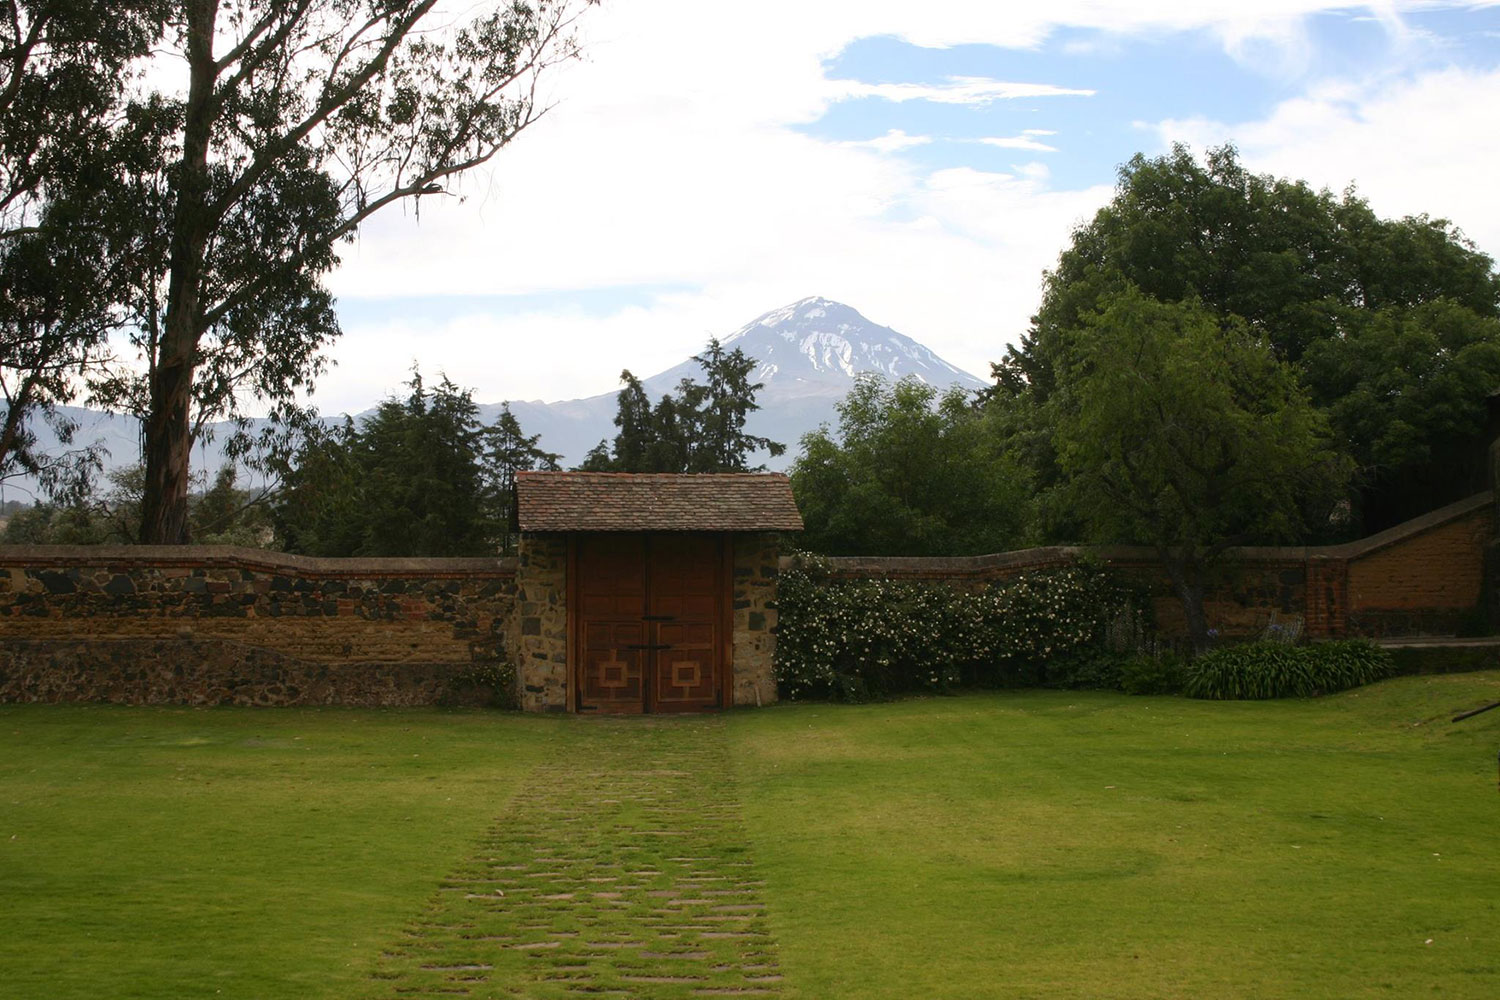 The hacienda gate with the volcano Popocatépetl behind.